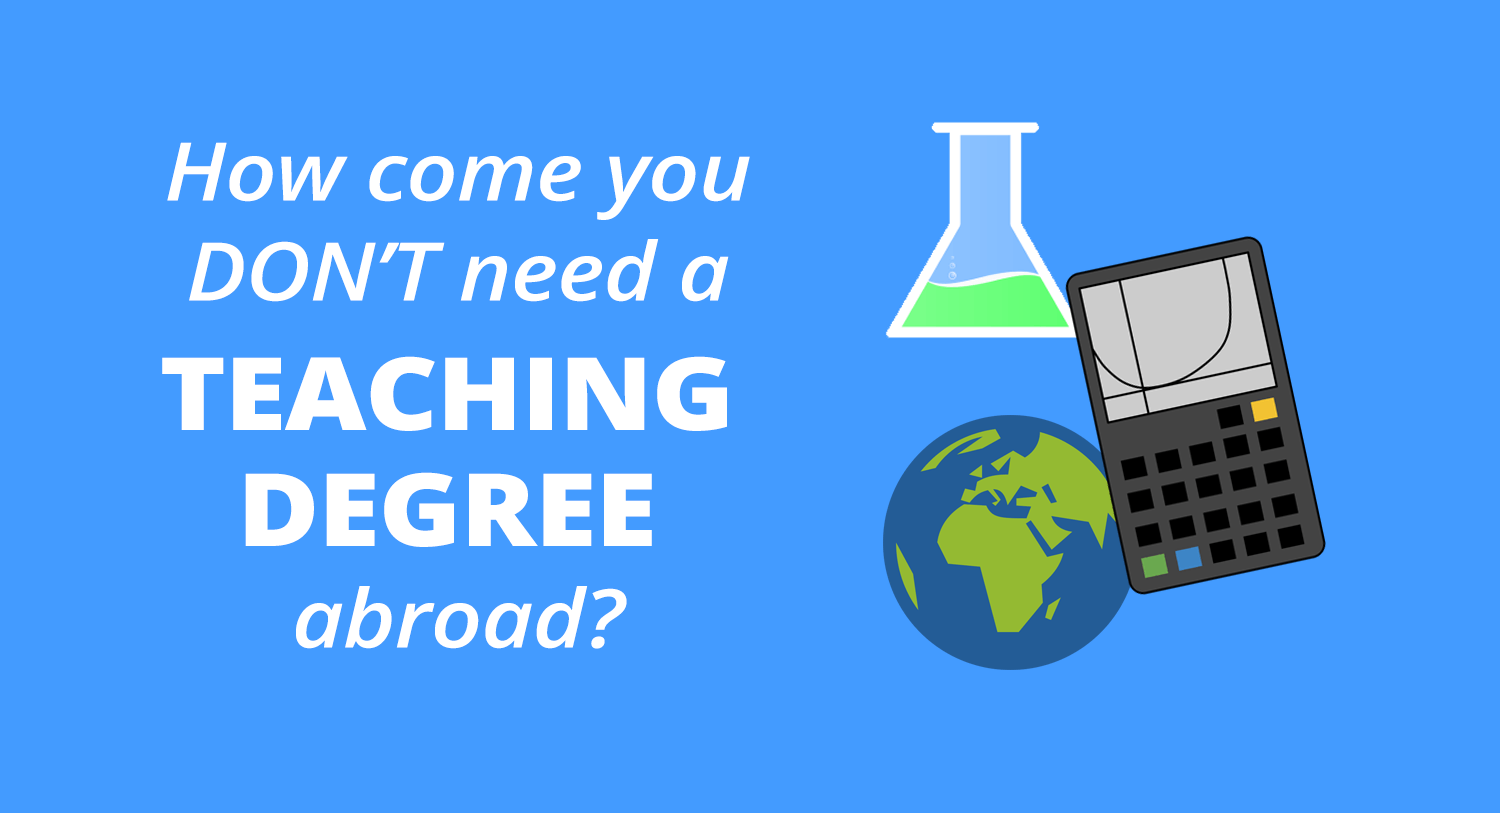 teaching degree abroad